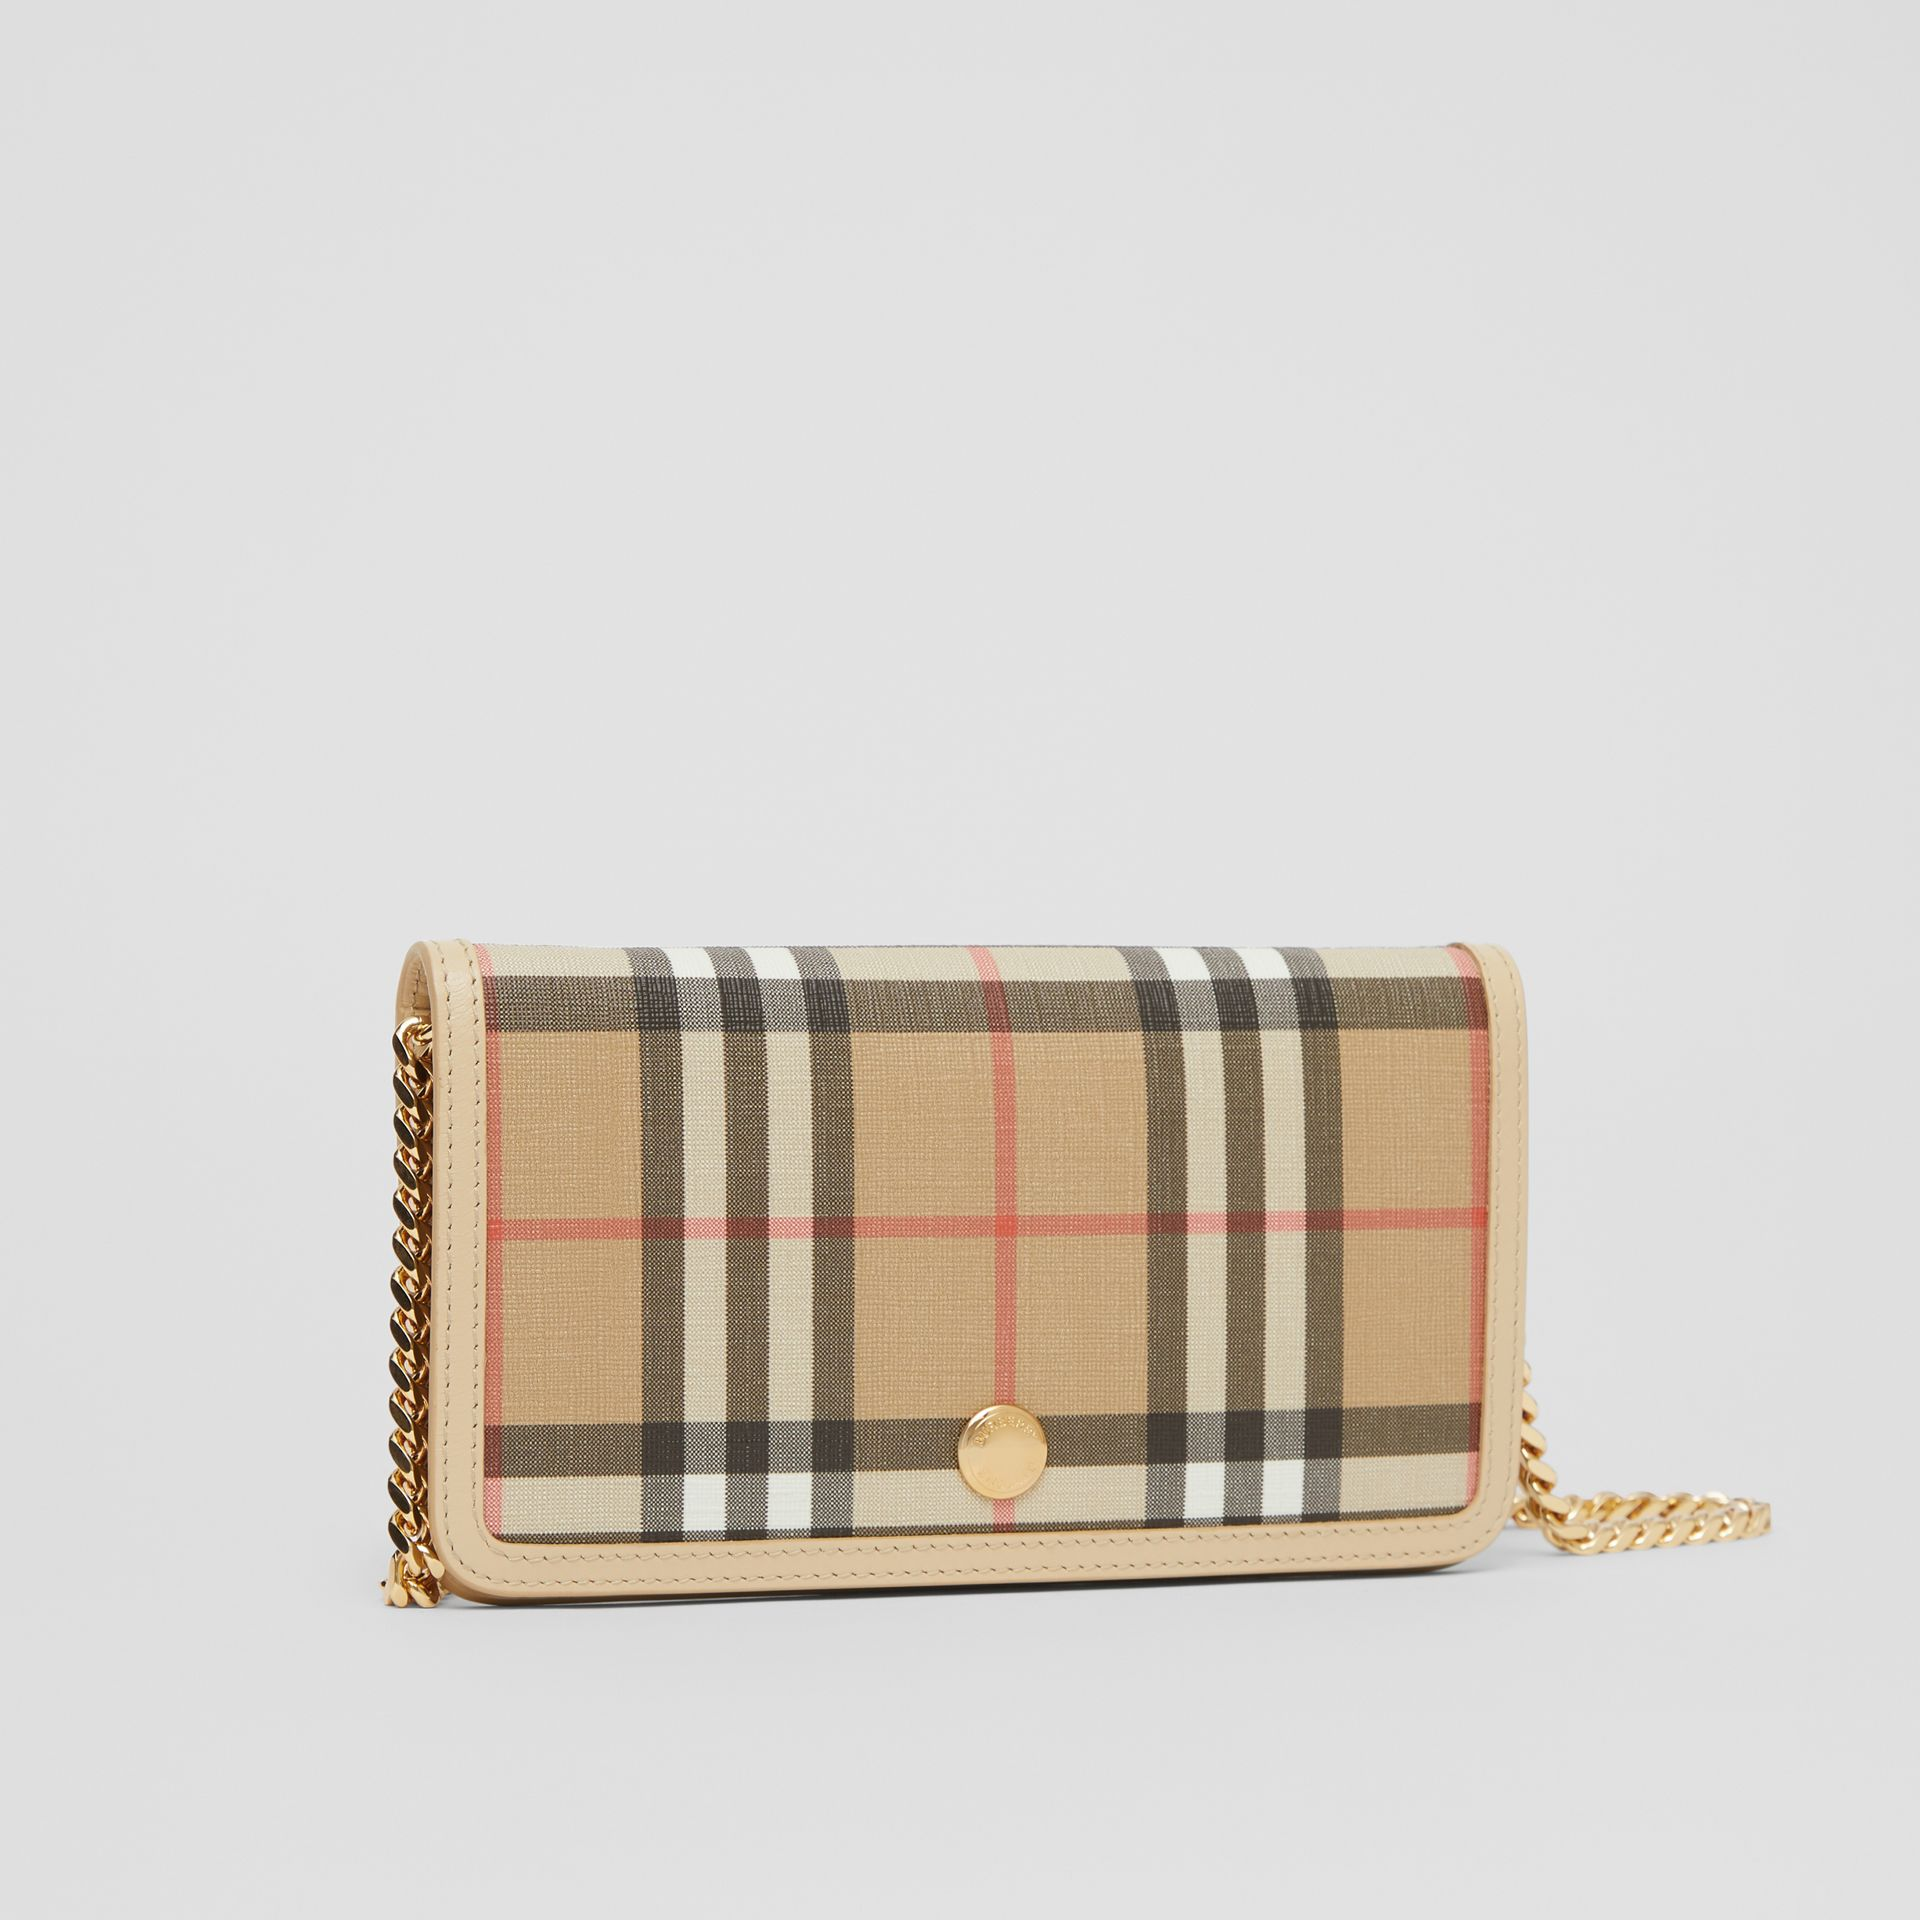 Vintage Check E-canvas Phone Wallet with Strap in Beige - Women | Burberry - gallery image 4